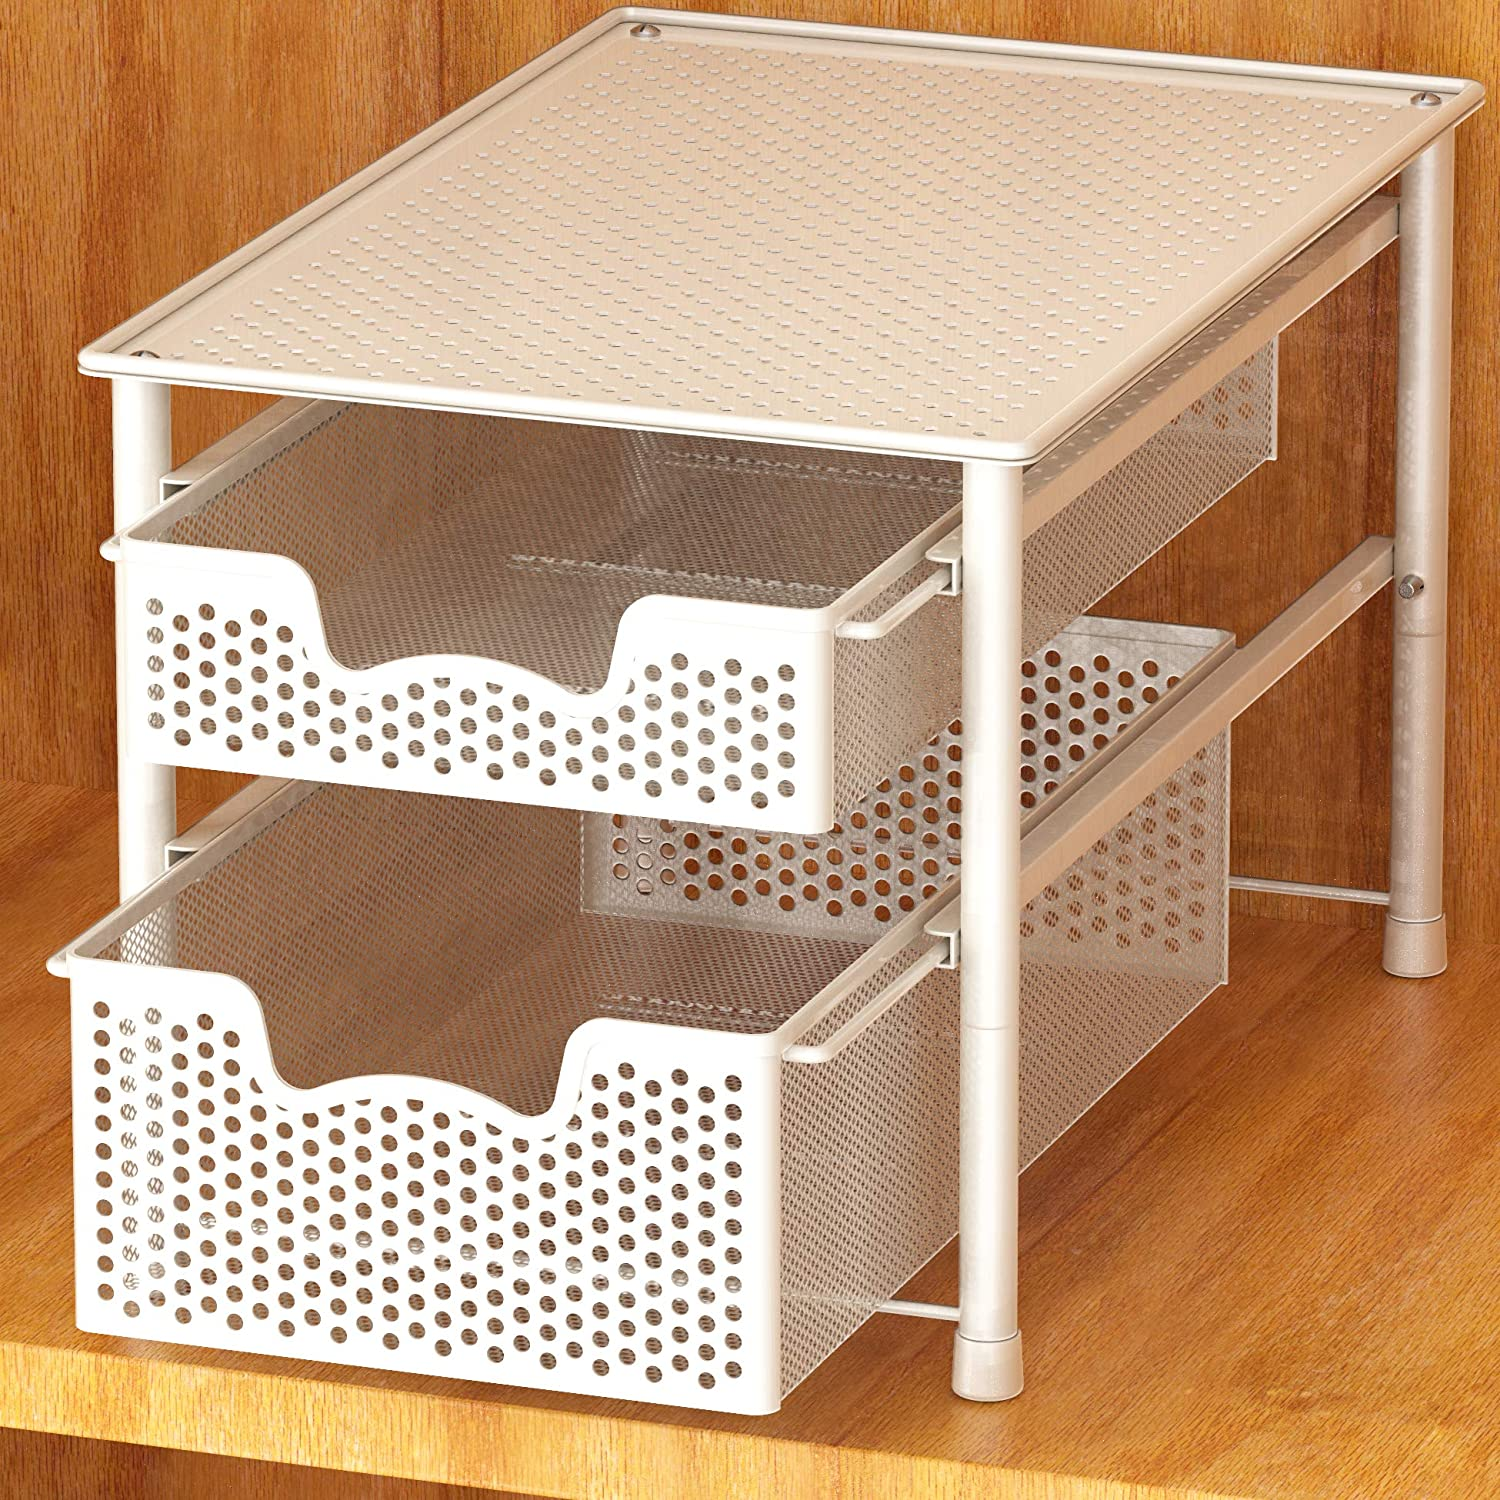 Simple Houseware Stackable 2 Tier Sliding Basket Organizer Drawer, White